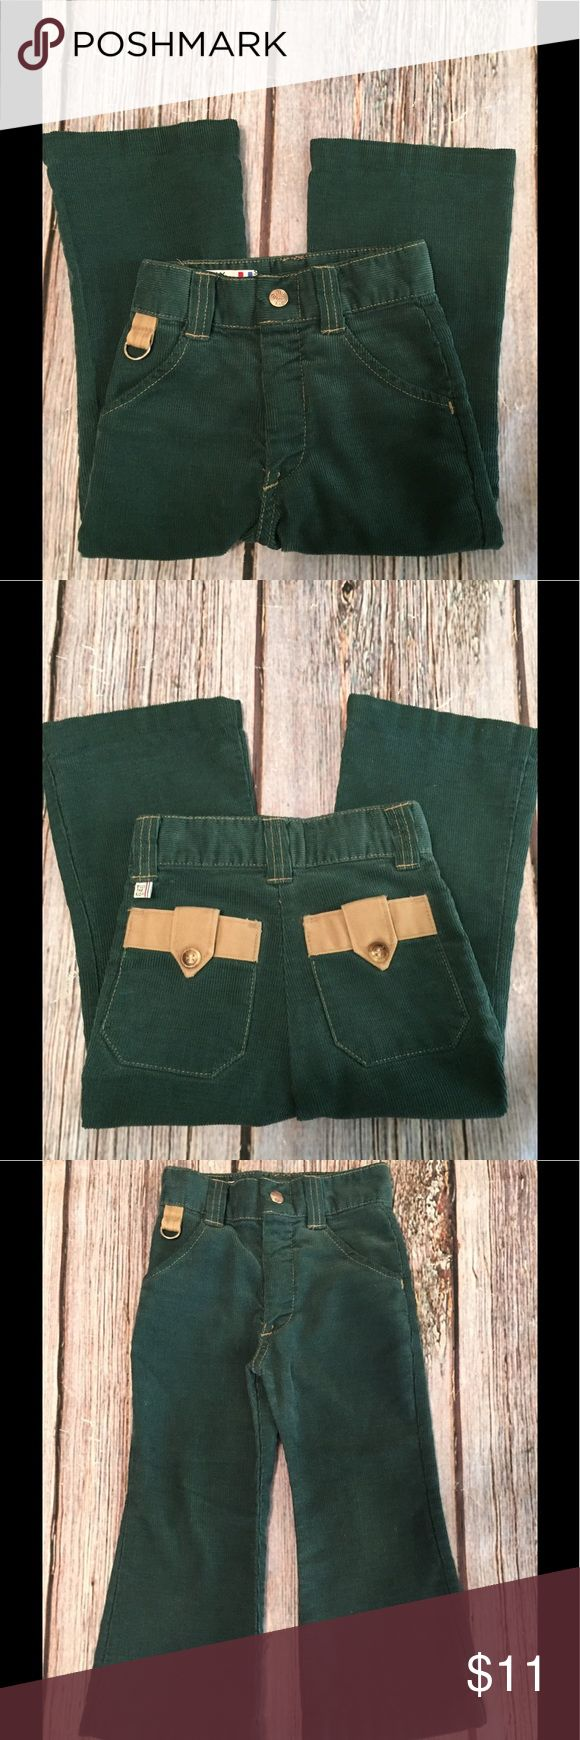 """Childrens Billy the Kid Corduroy Jeans SZ 4Slim Very cute and kind of retro! Childrens Billy the Kid green cords. Size 4 slim. Waist is 18"""" and length/inseam is 15"""" Billy the Kid Bottoms Jeans"""